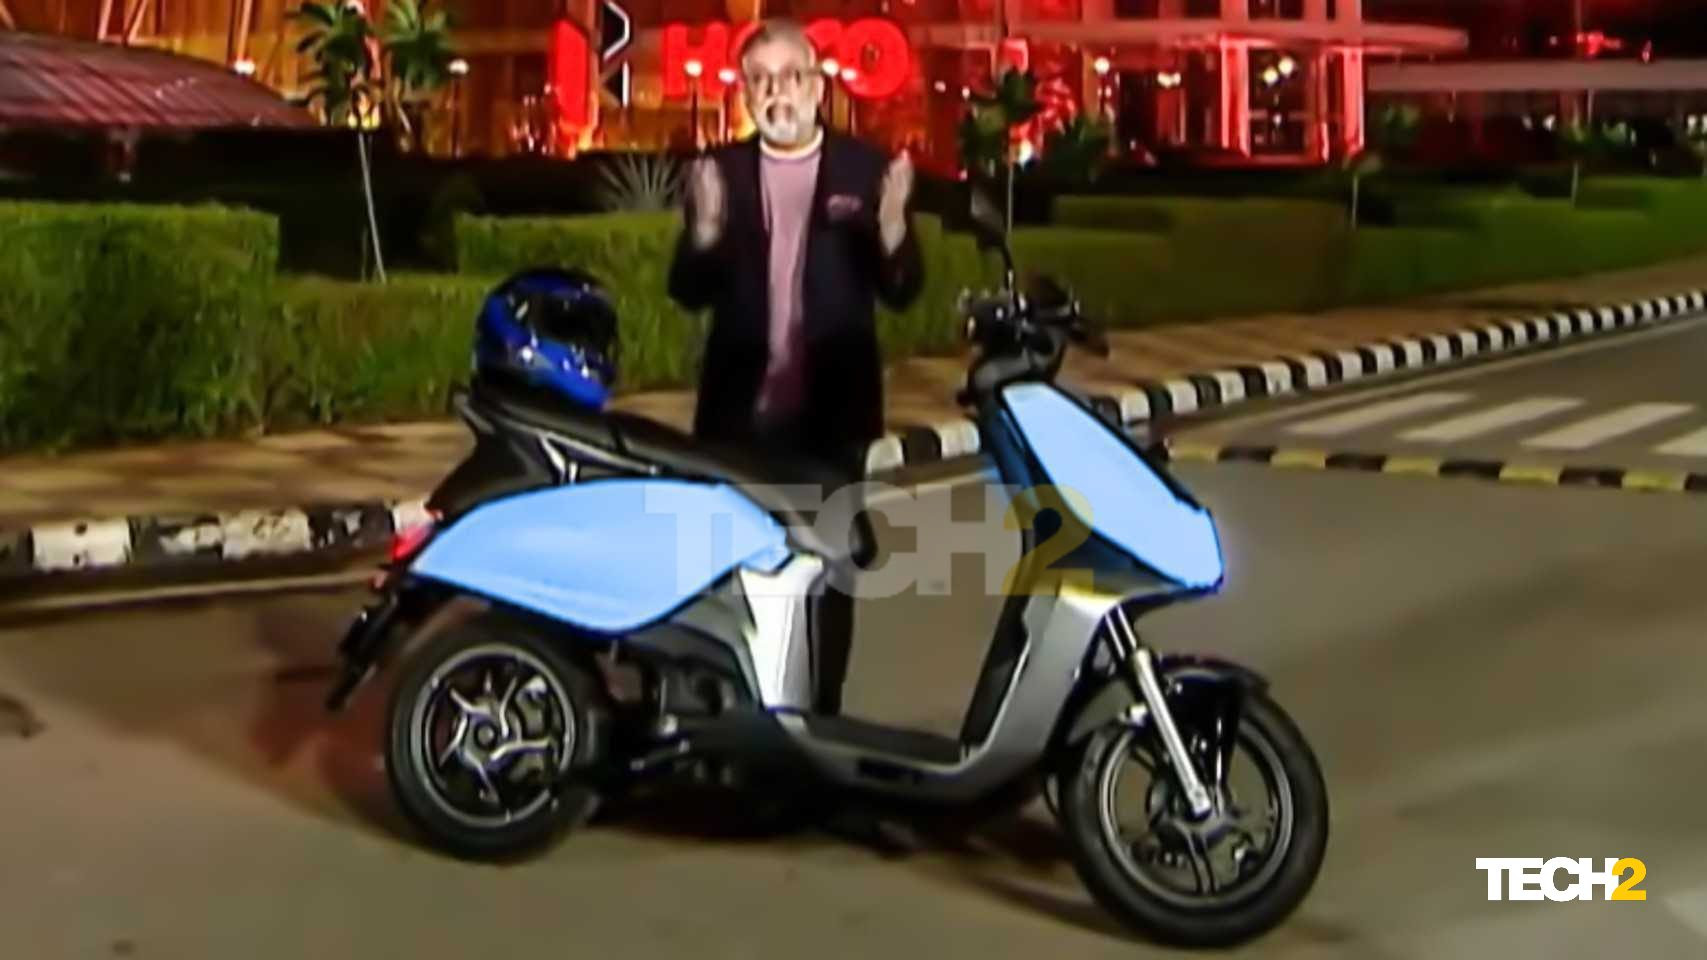 Hero MotoCorp's first electric scooter is expected to follow a fixed charging system. Image: Hero MotoCorp